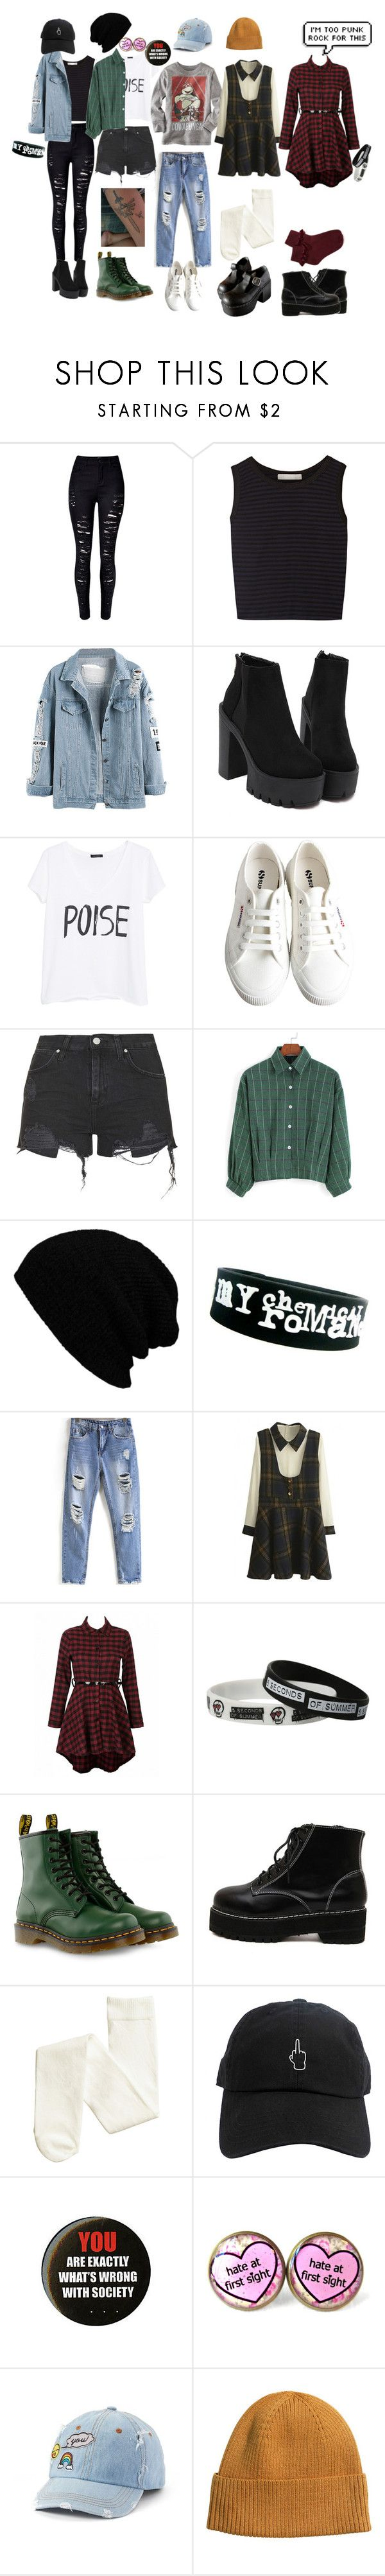 """Different types of me"" by sirine-hmd ❤ liked on Polyvore featuring Kain, MANGO, Old Navy, Superga, Topshop, KBETHOS, WithChic, Hot Topic, Dr. Martens and SO"